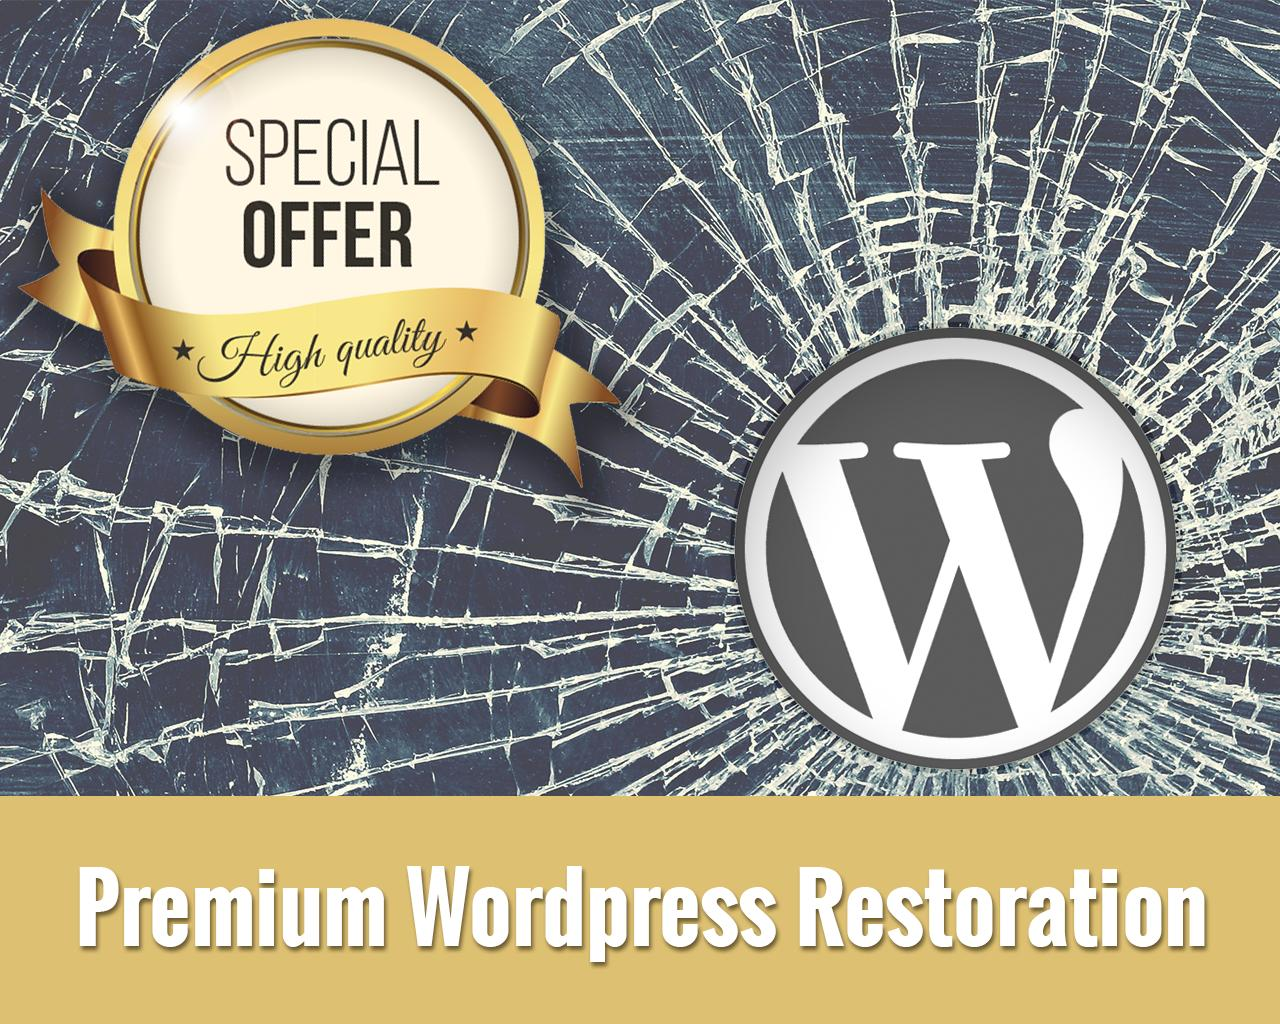 Premium Wordpress Restoration (Broken Website) by Betta - 101076